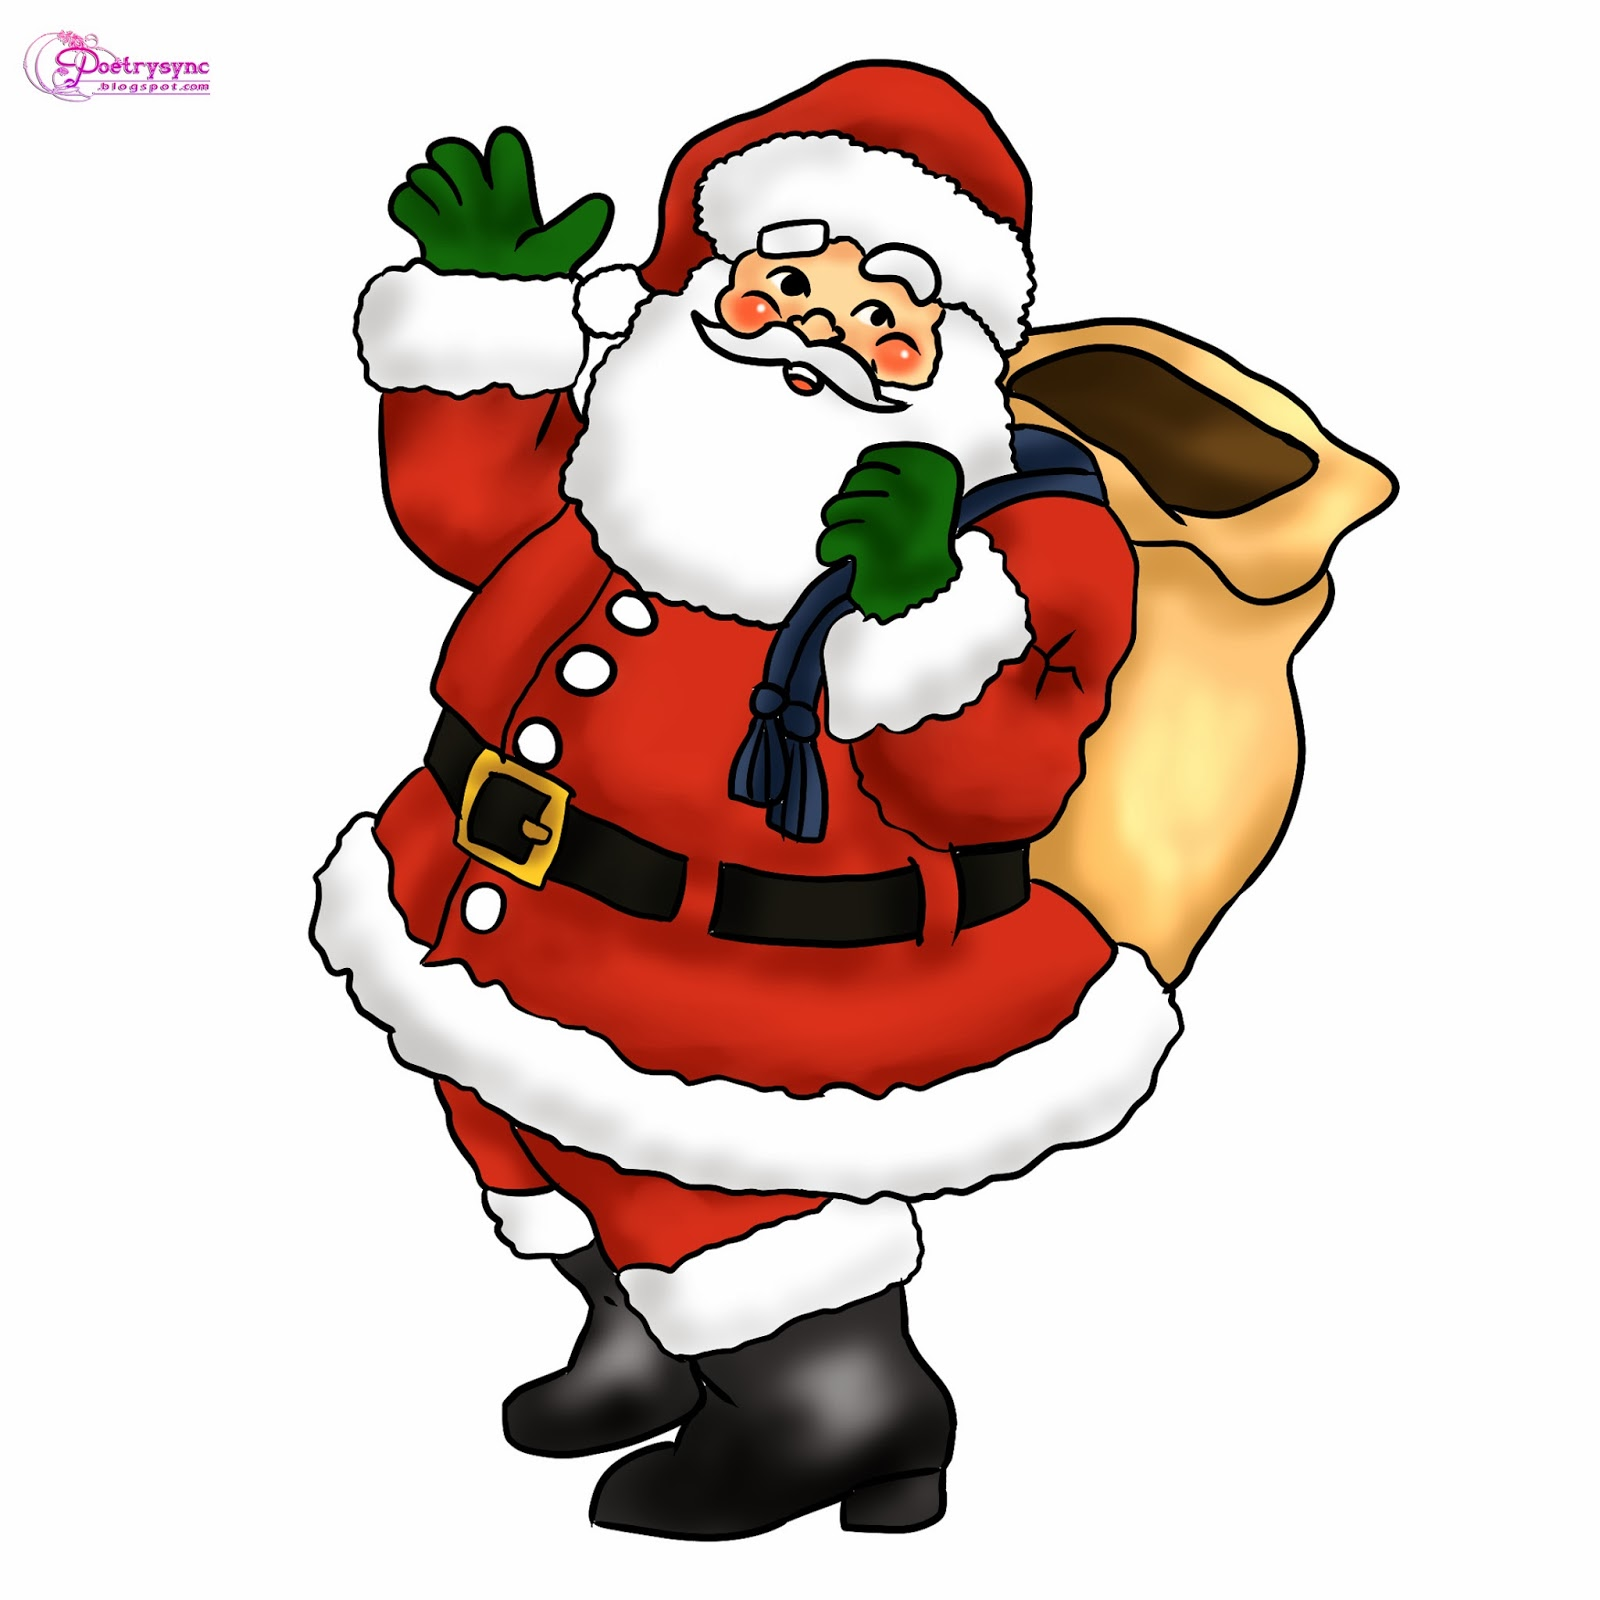 Christmas Pictures Clipart & Christmas Pictures Clip Art Images.